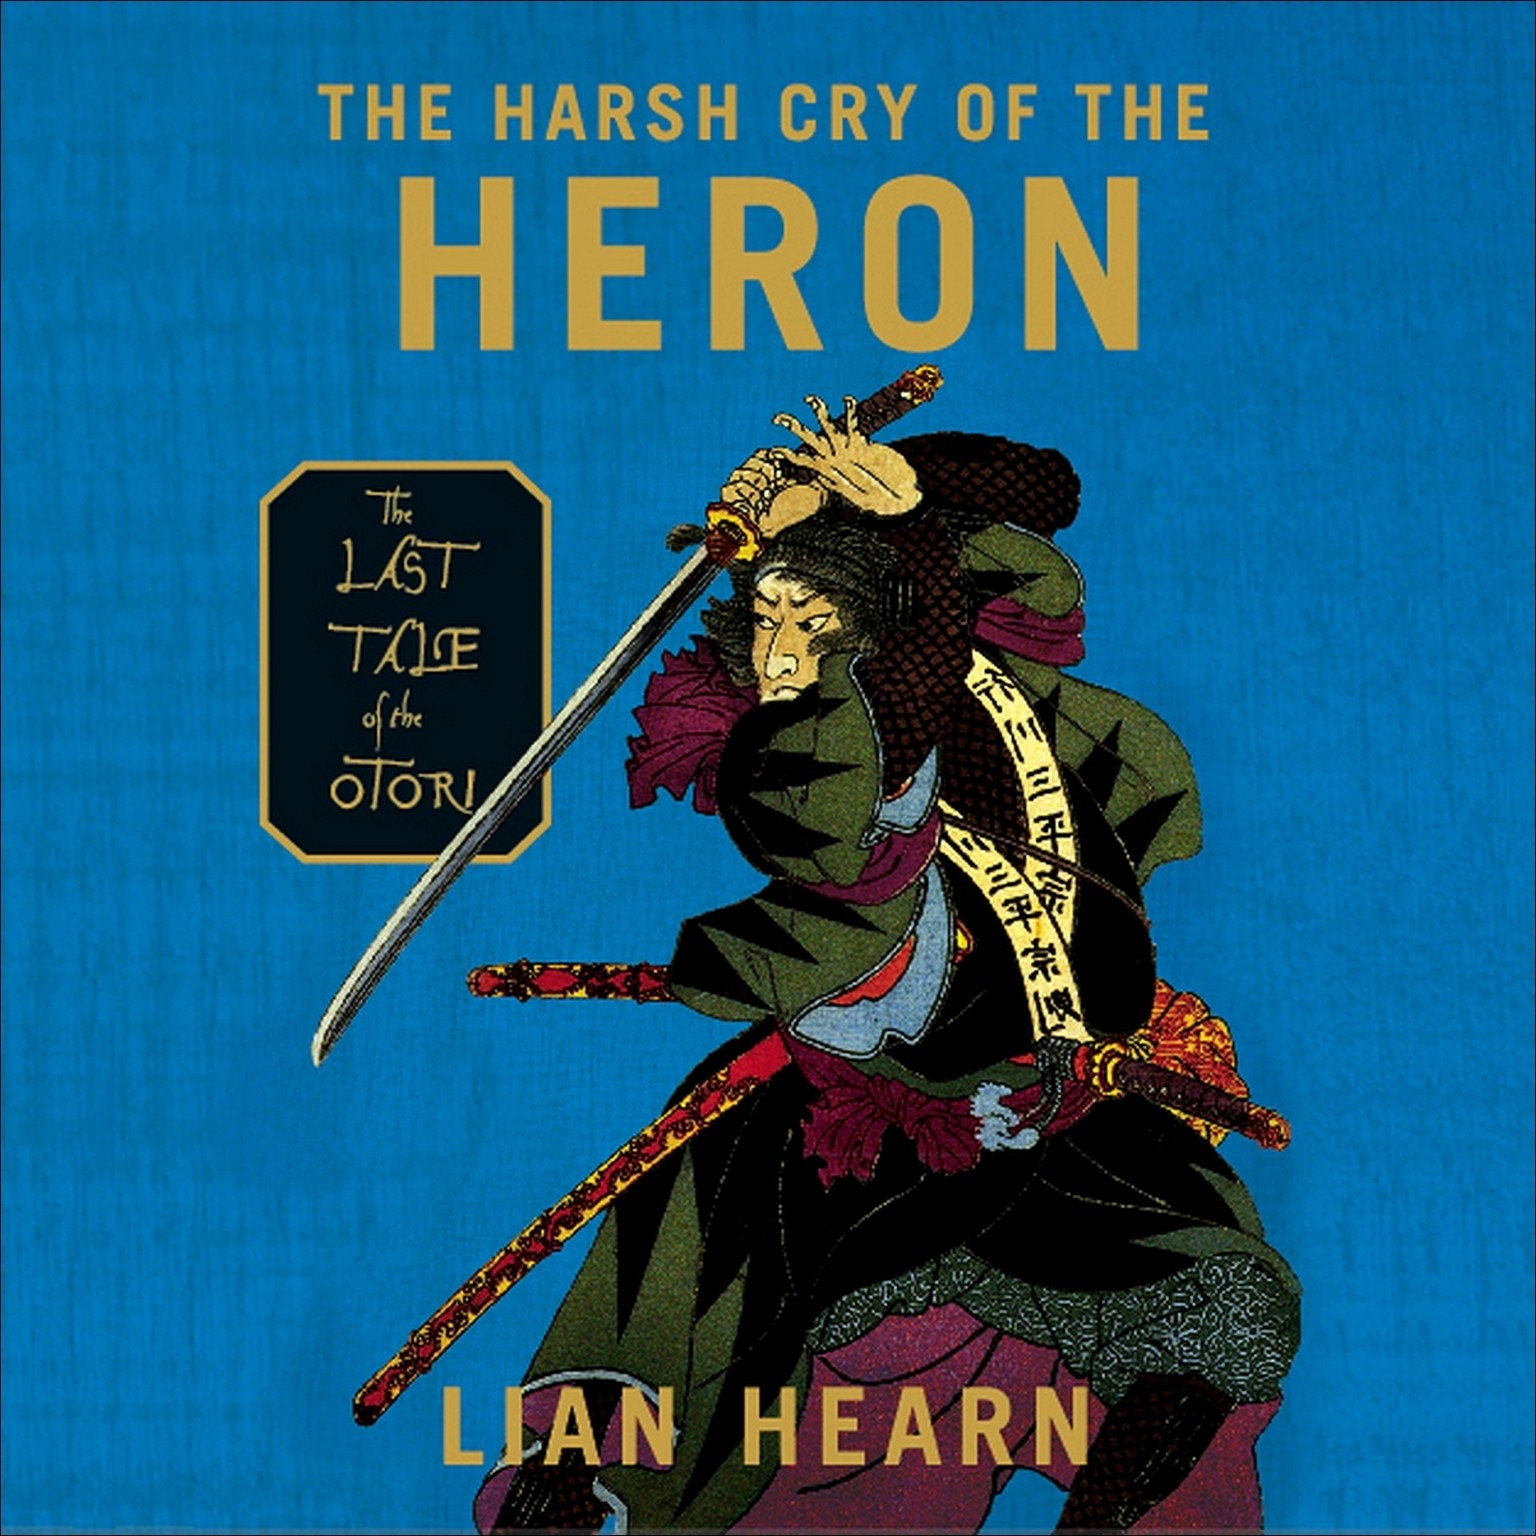 Printable The Harsh Cry of the Heron: The Last Tale of the Otori Audiobook Cover Art